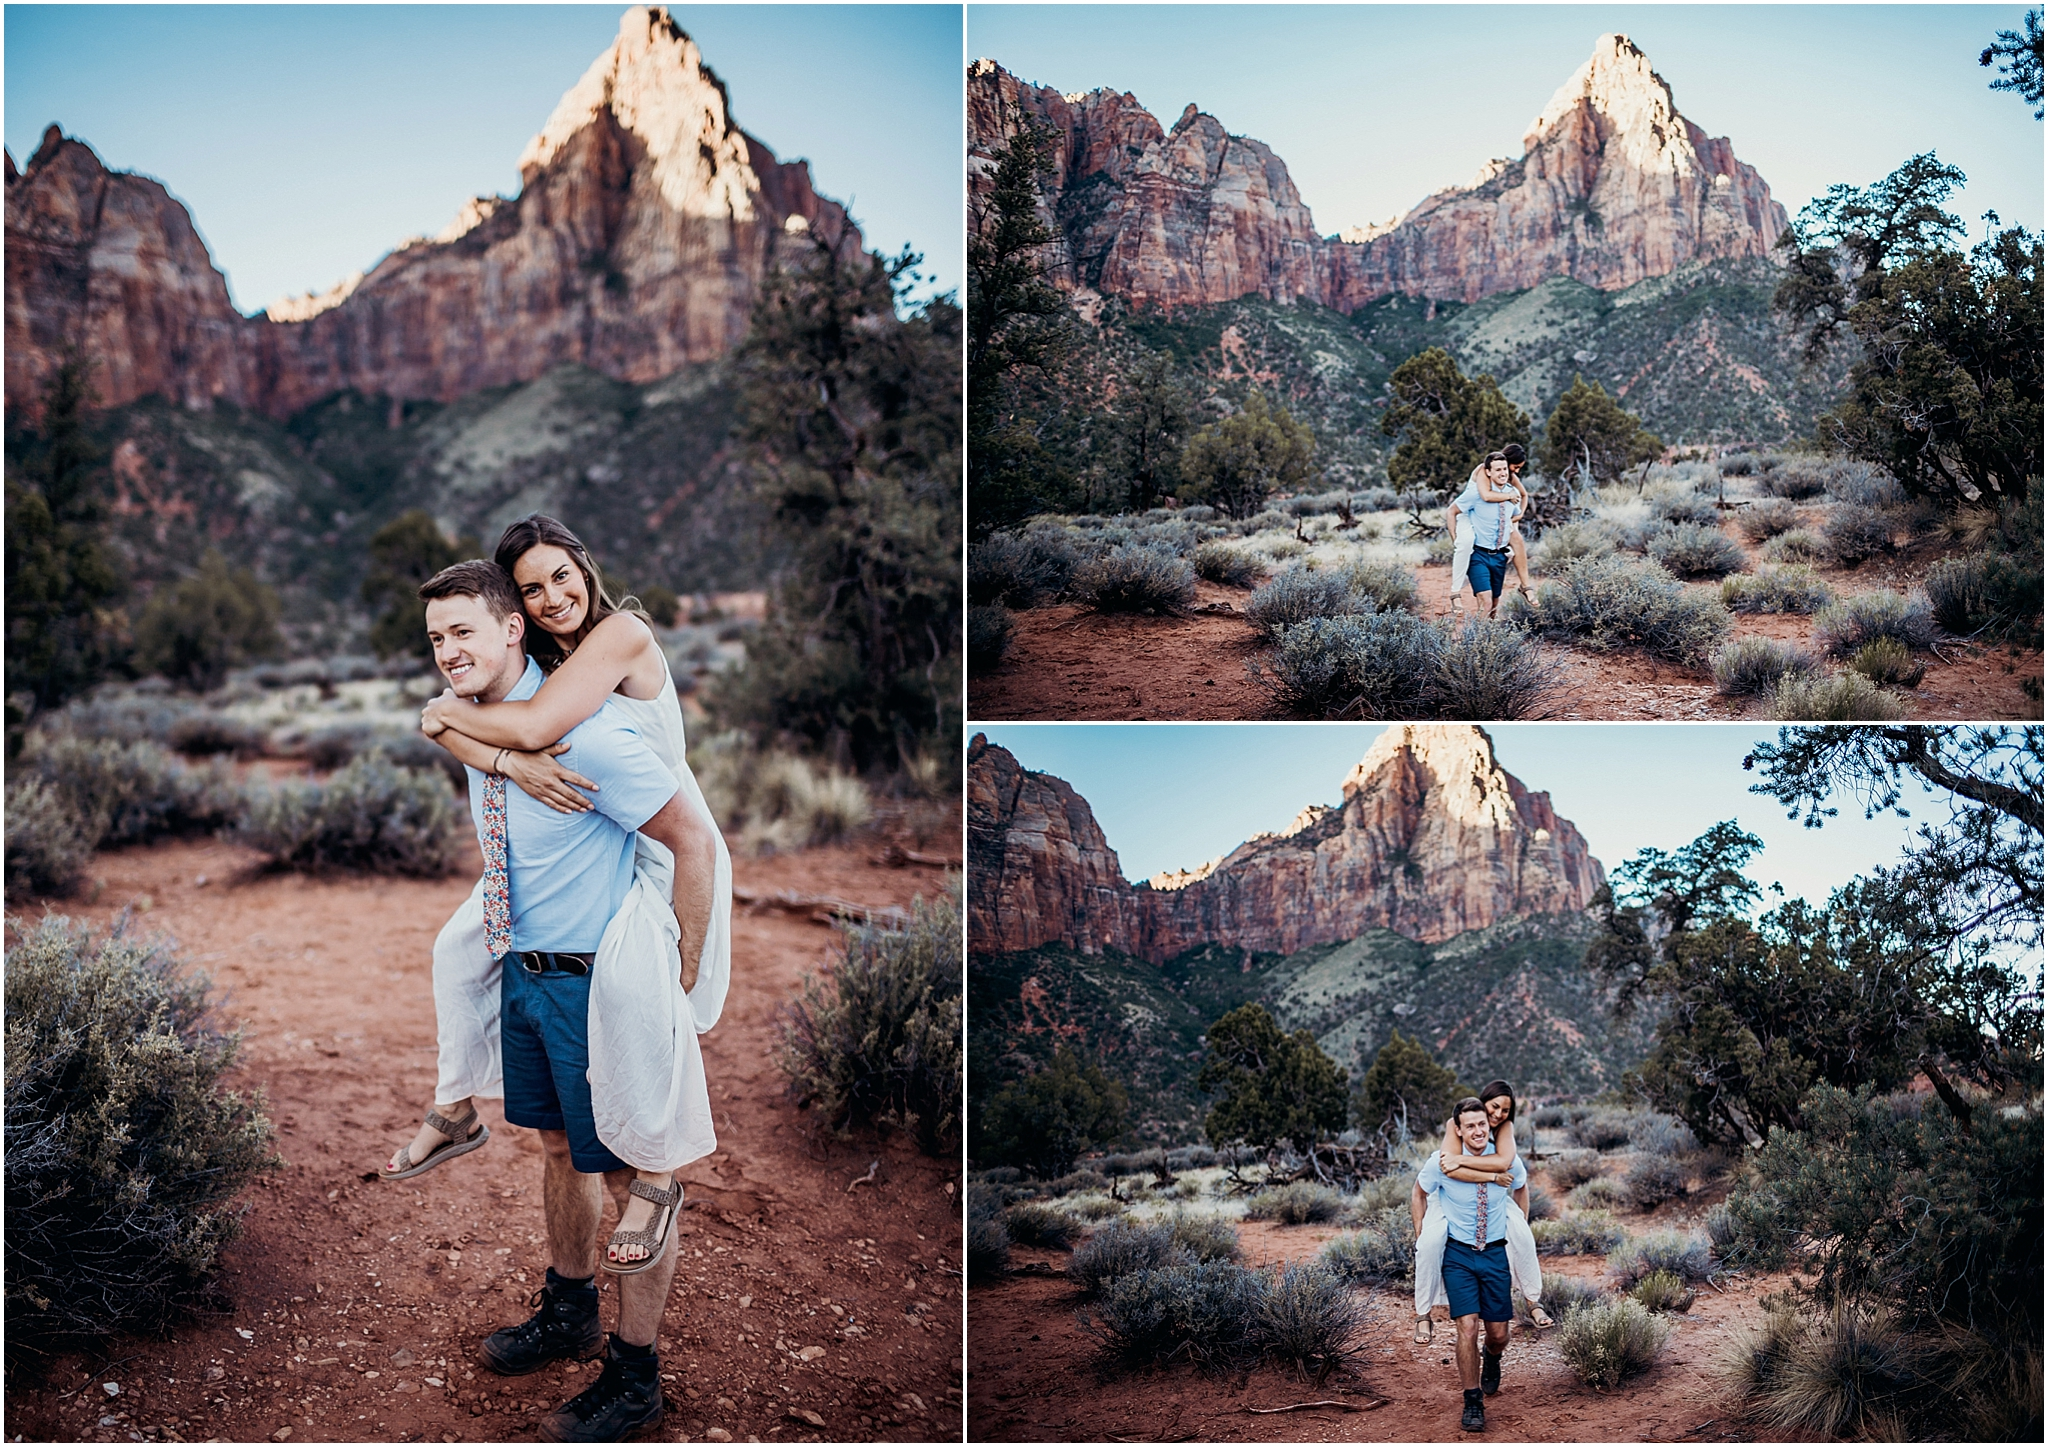 zion national park adventure engagement session zion portraits utah photographer arizona photographer 10.jpg